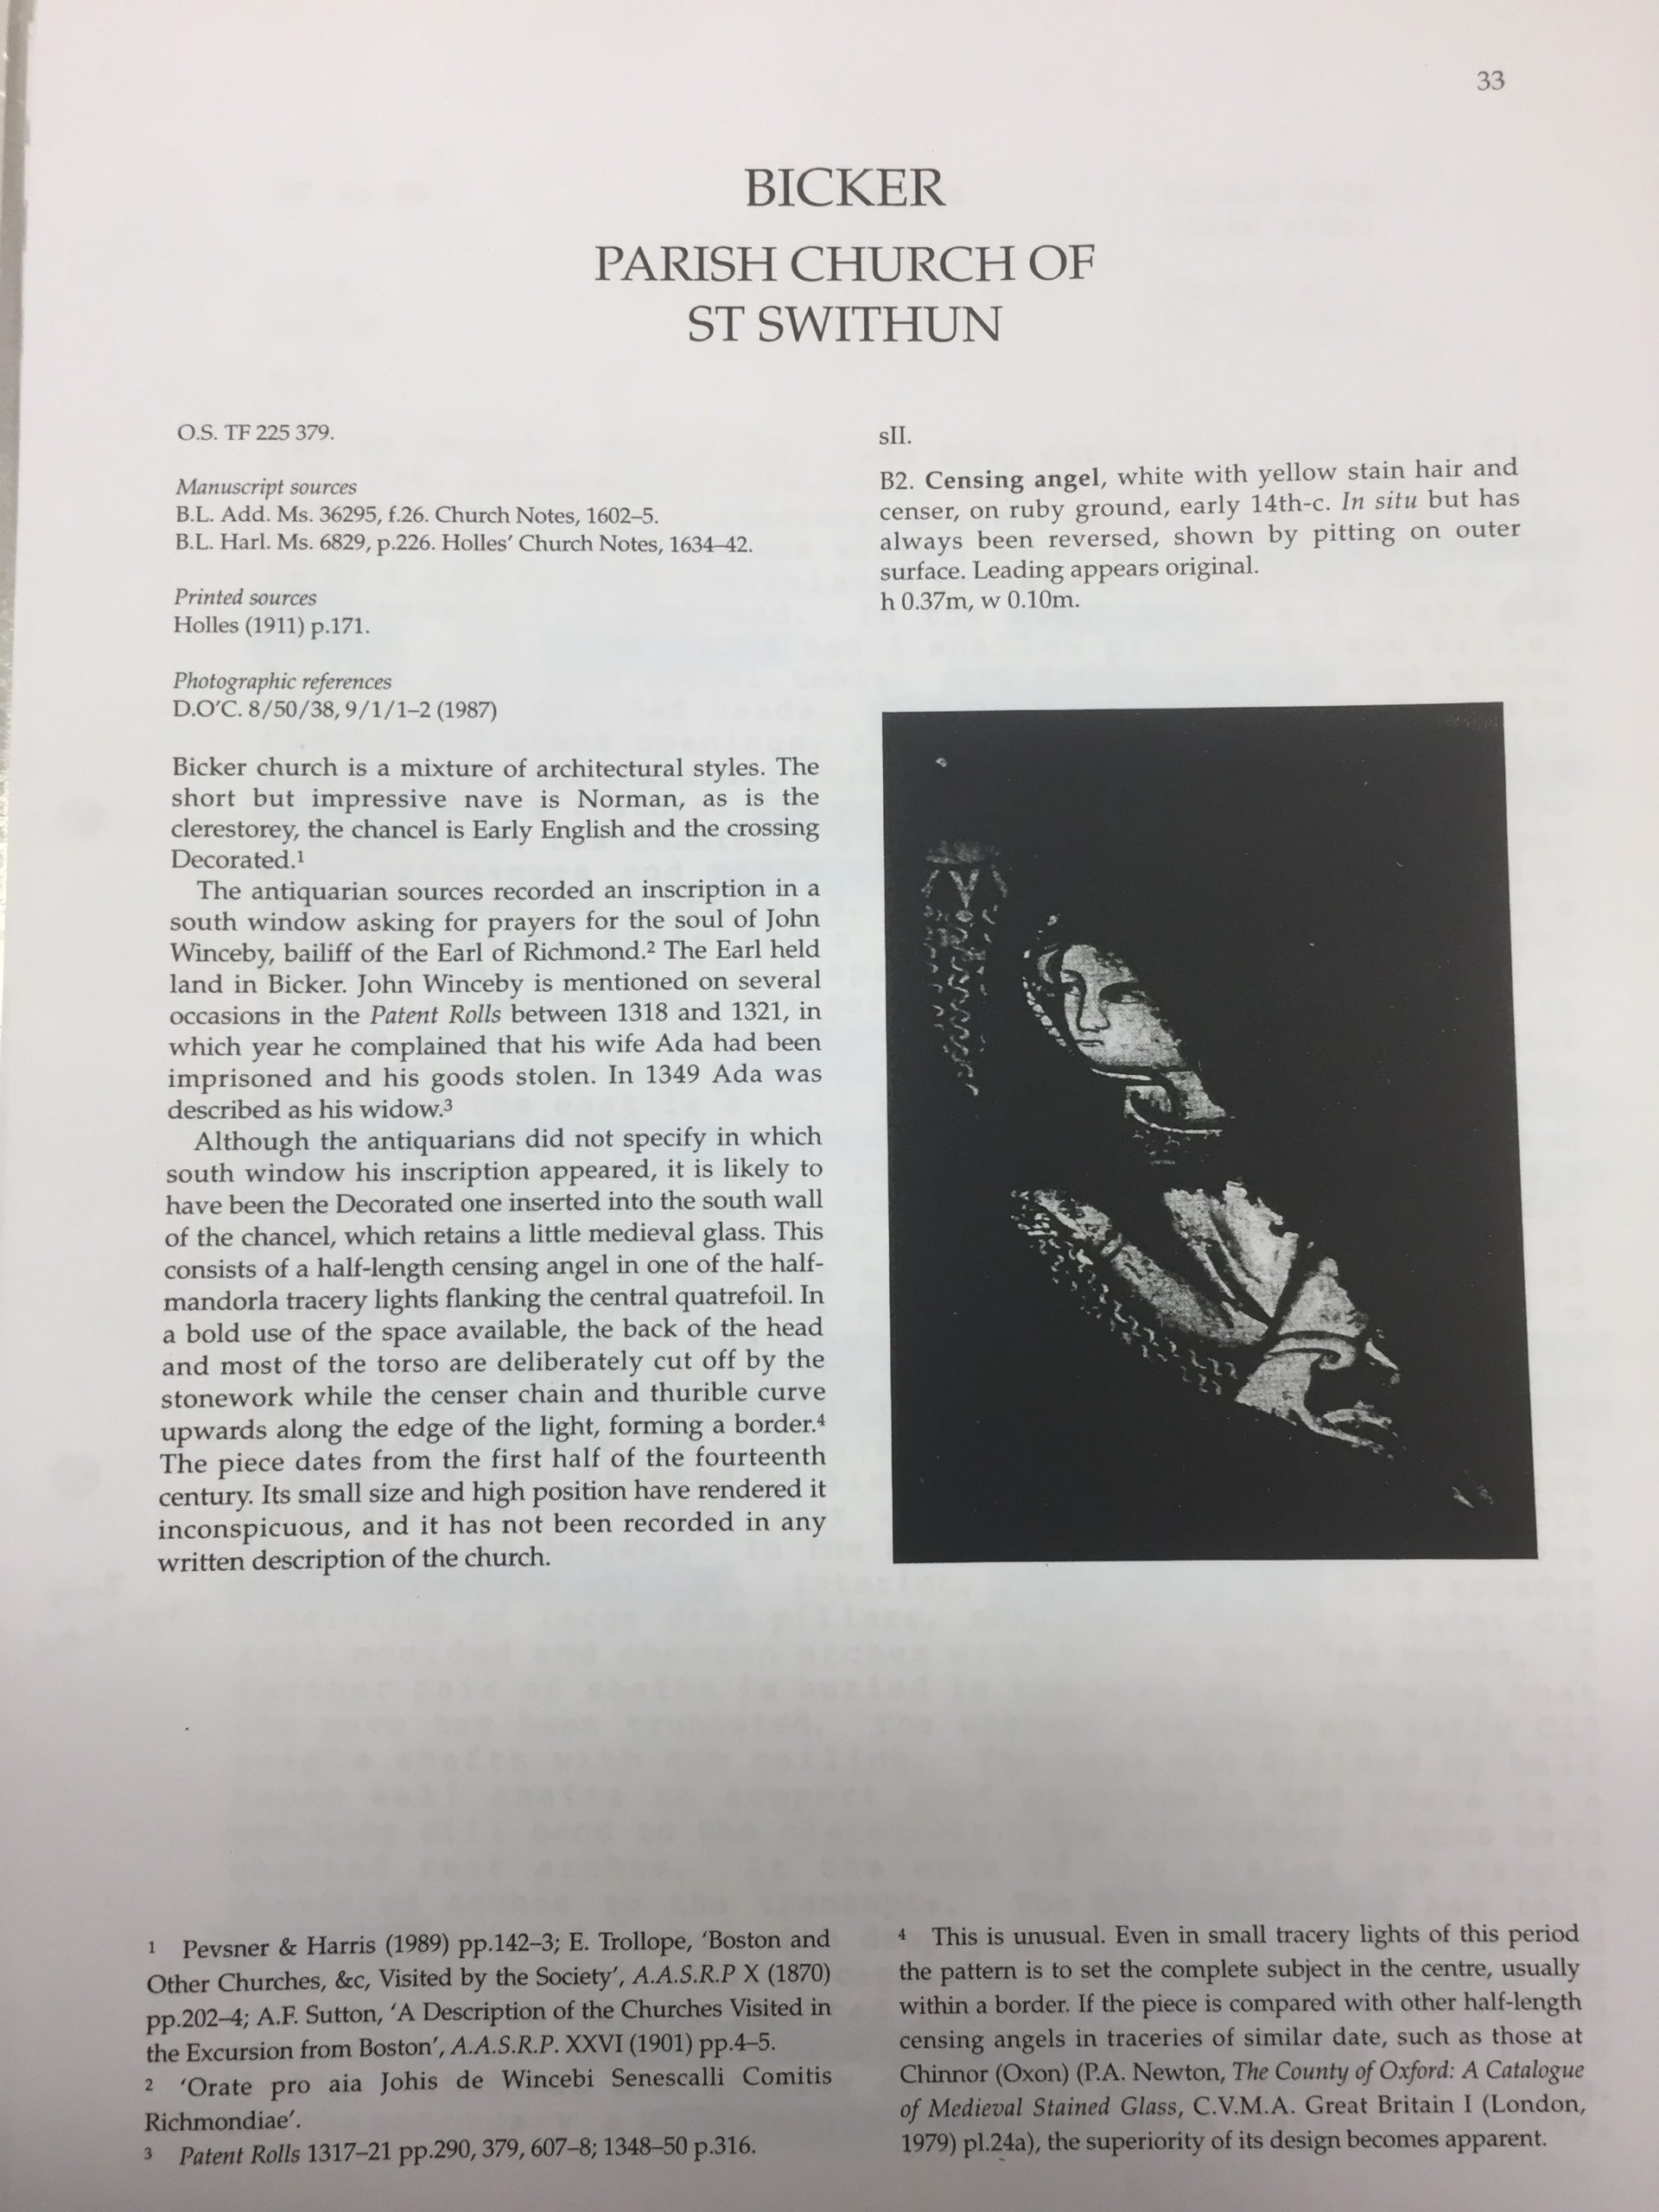 HH STSW Notes on St Swithun's church